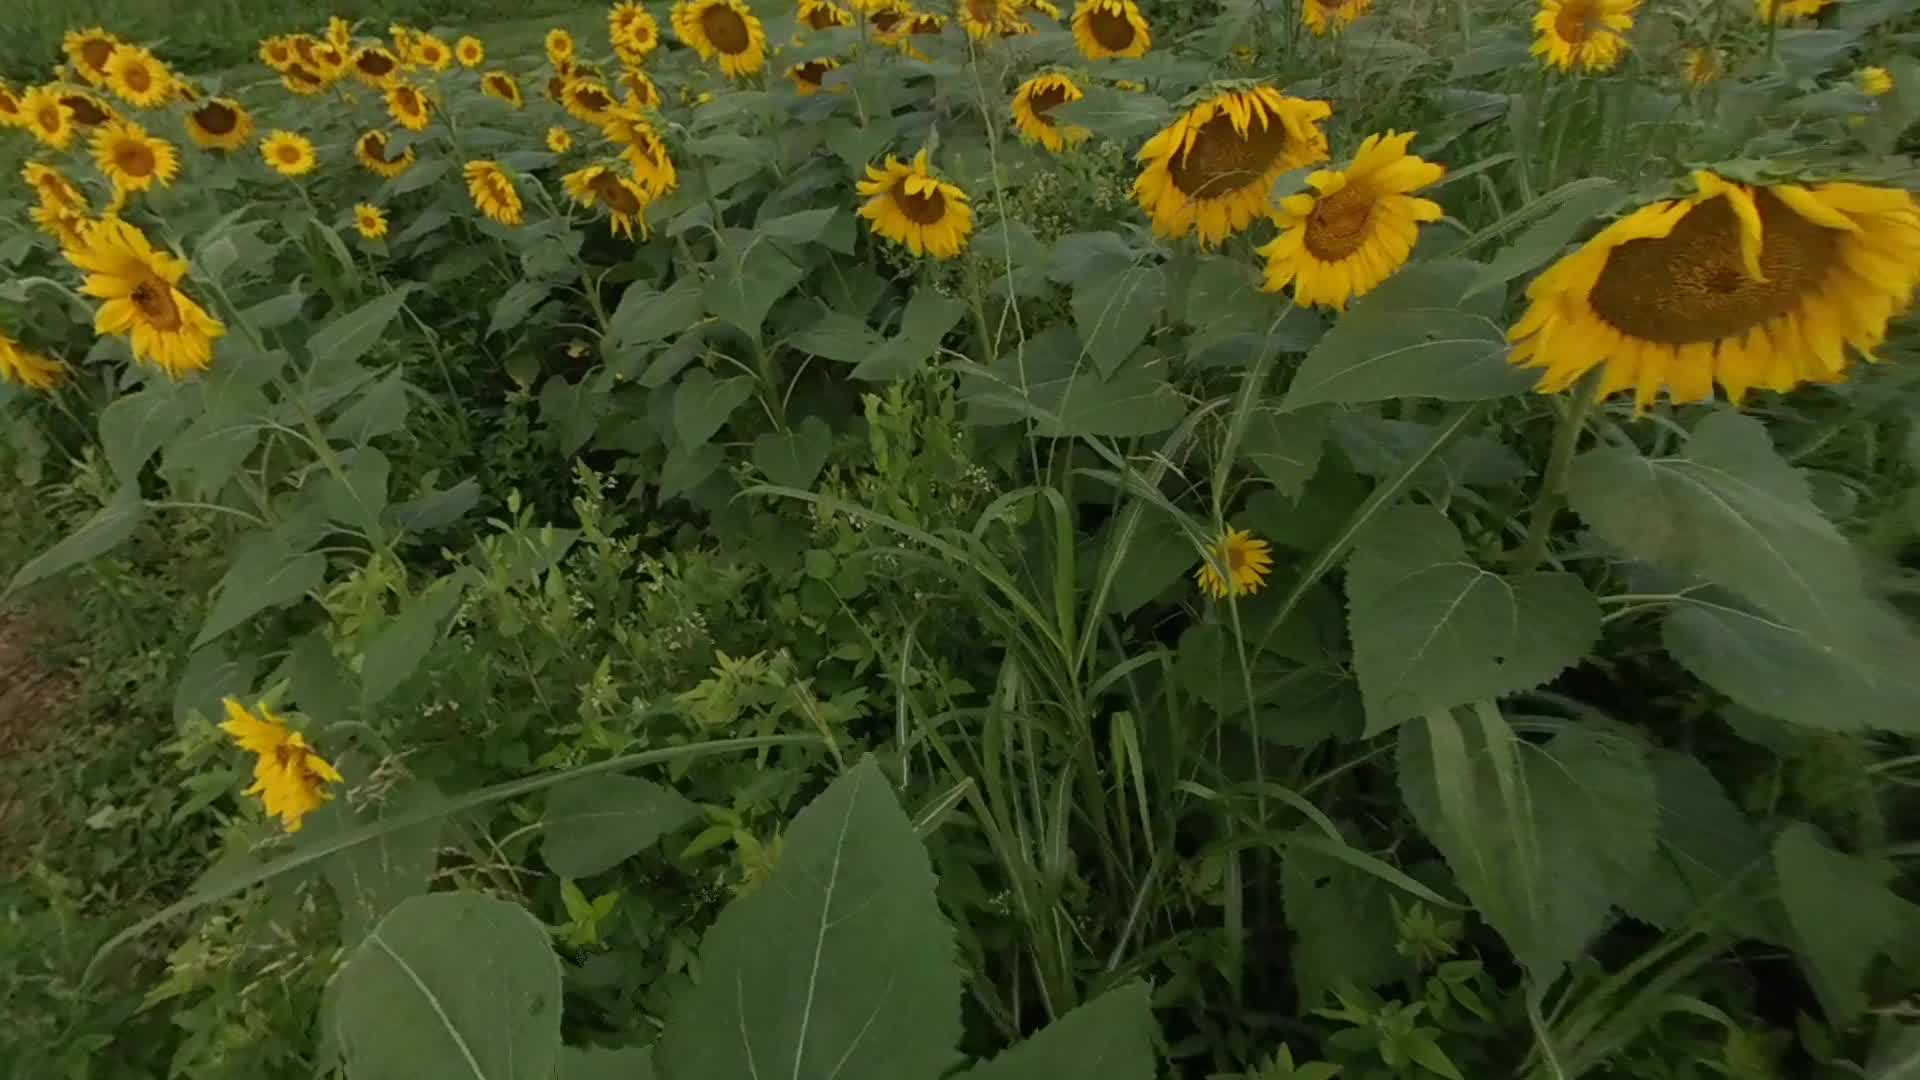 Sunflowers at the Forks of the River Wildlife Management Area on Thursday, July 11, 2019. (Jack Lail / WATE)